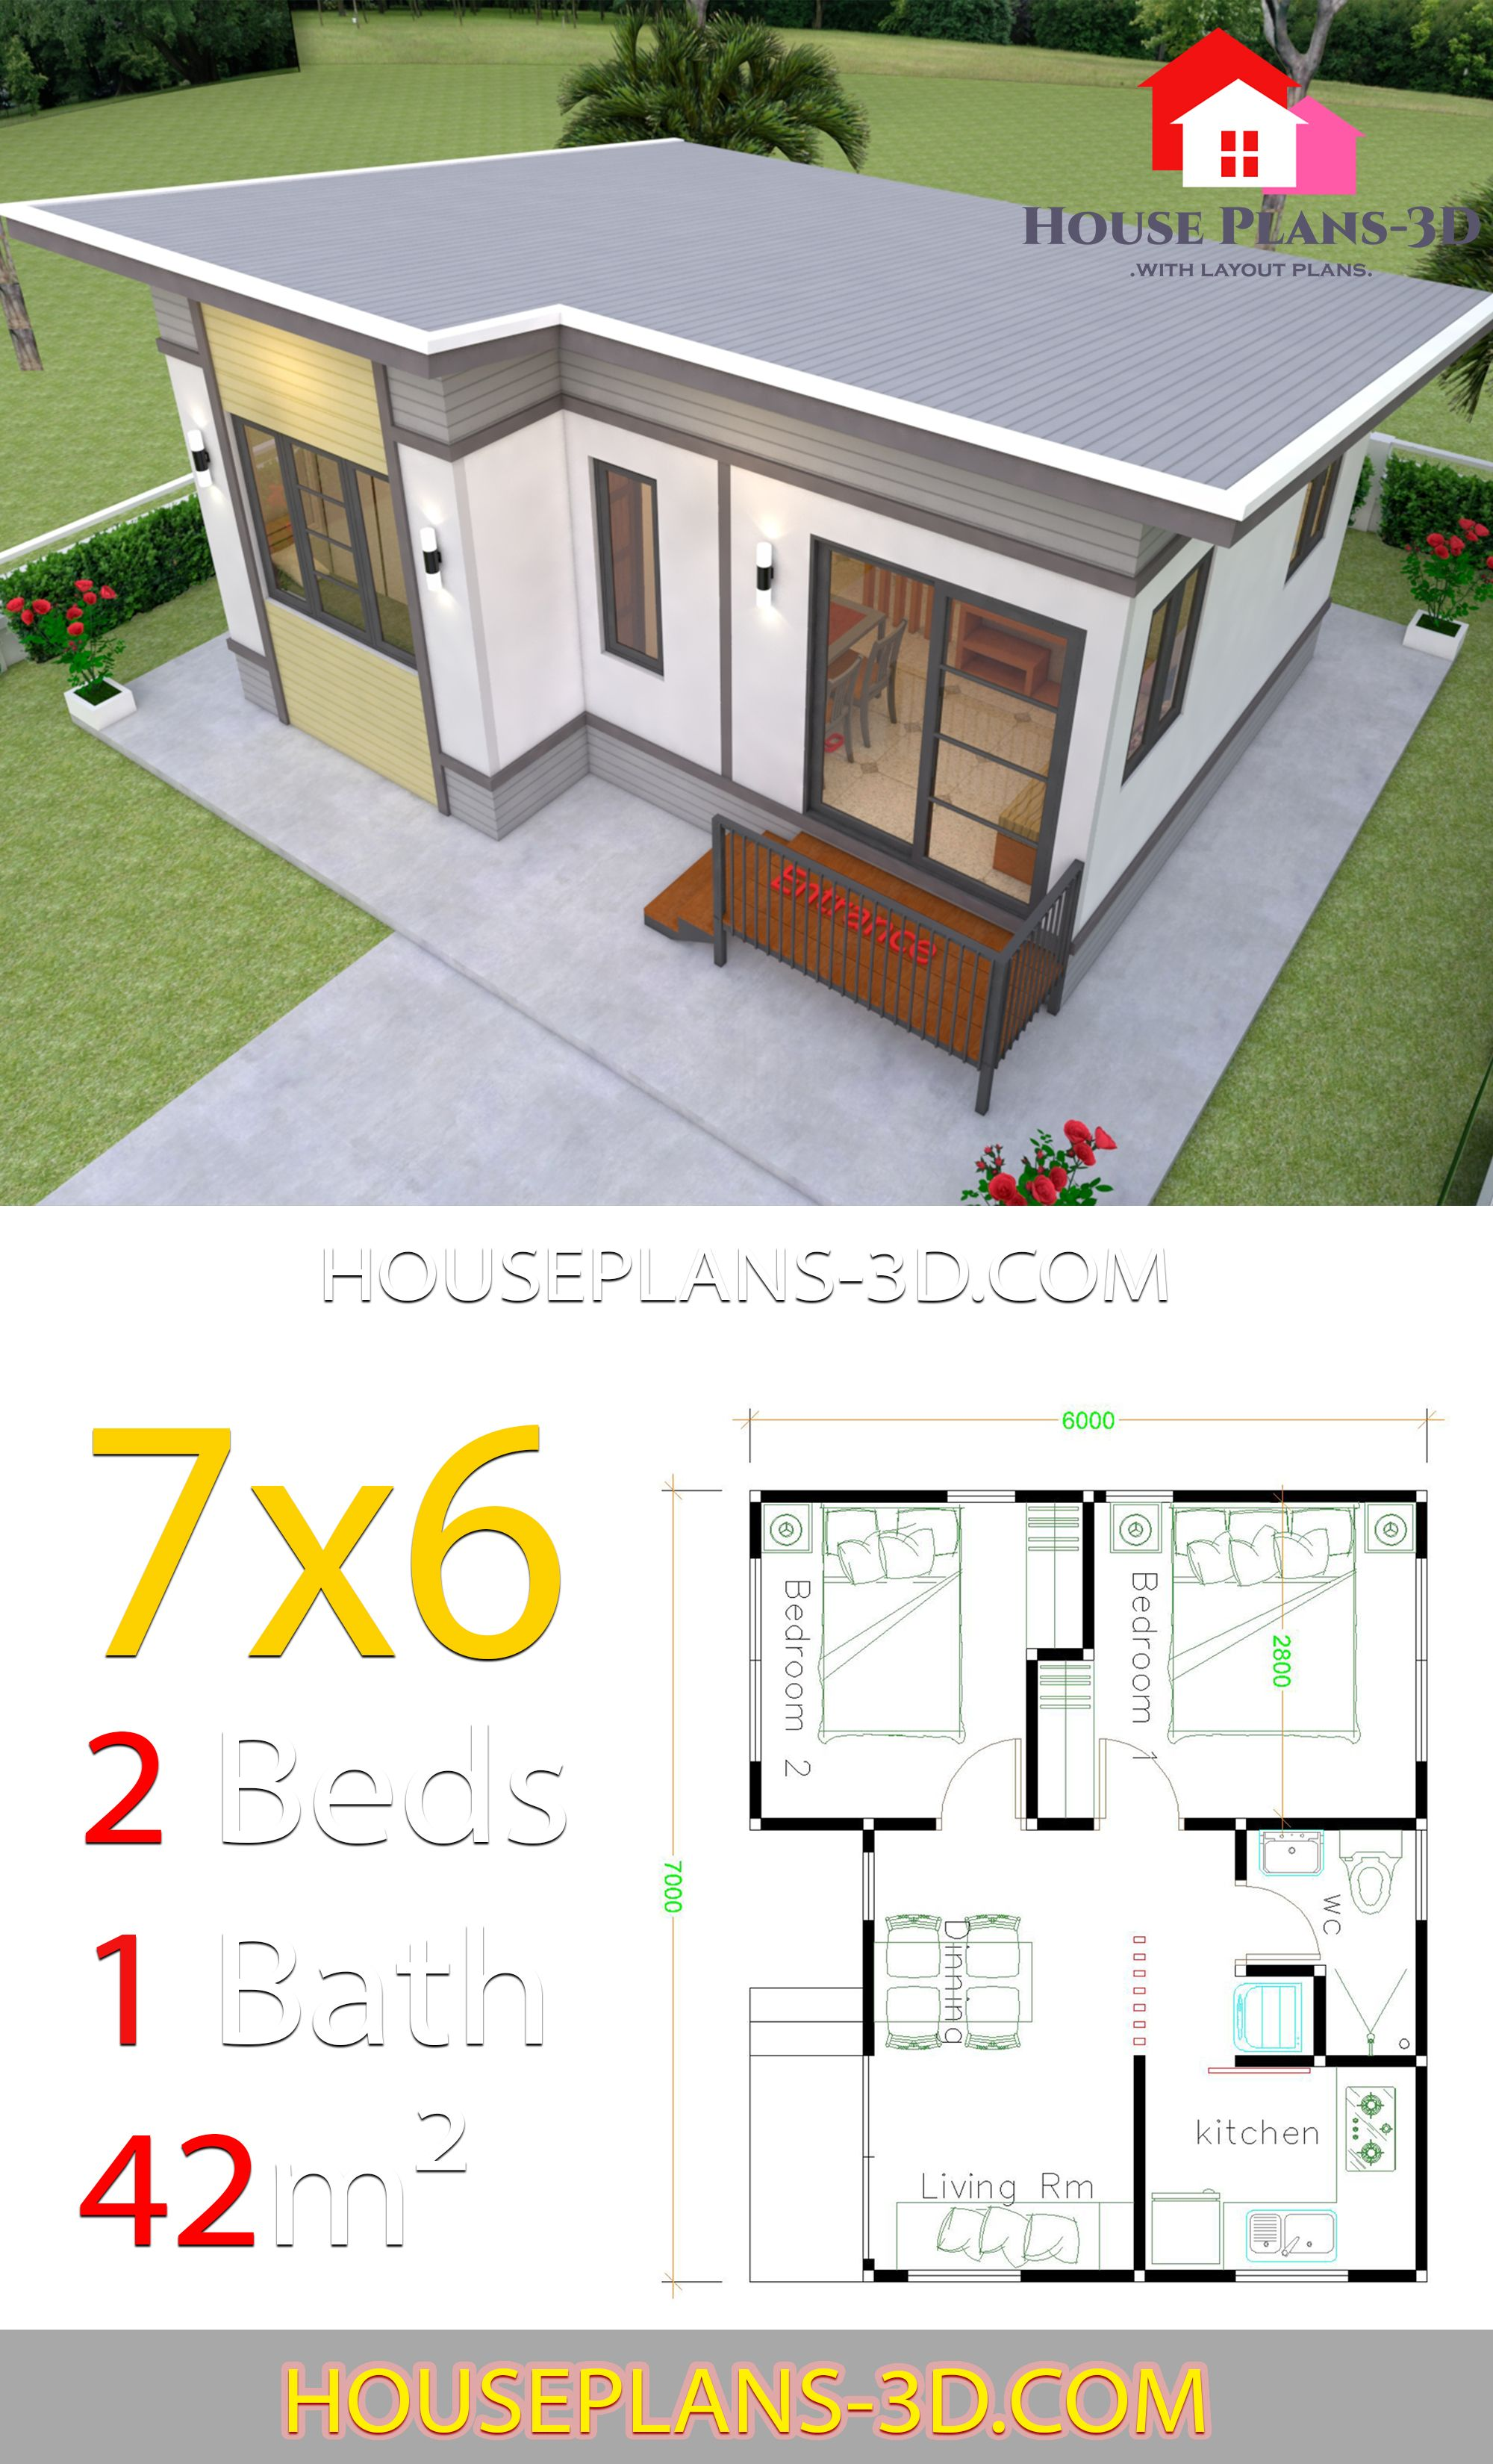 Small House Plans 7x6 With 2 Bedrooms In 2020 House Plans Small